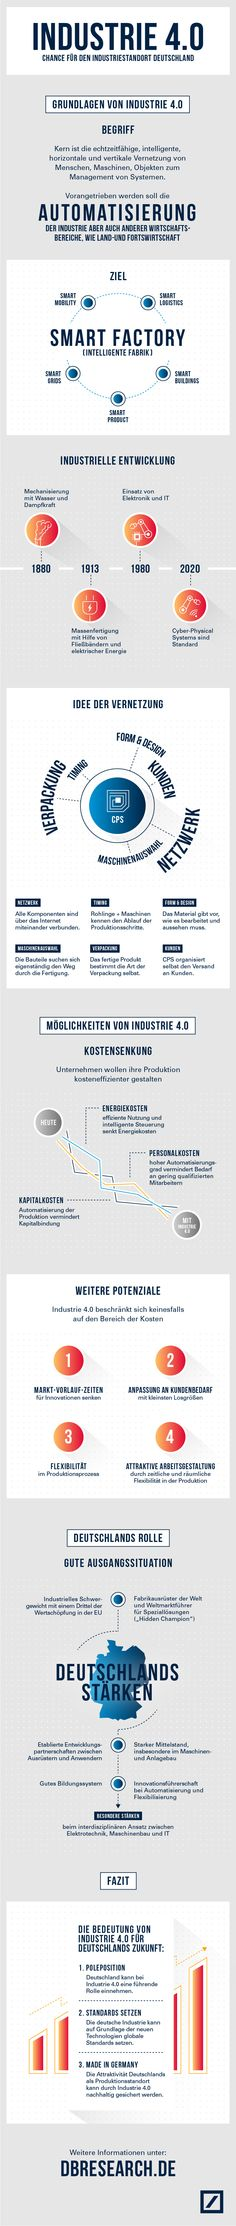 Industrie 4.0 | Visual.ly